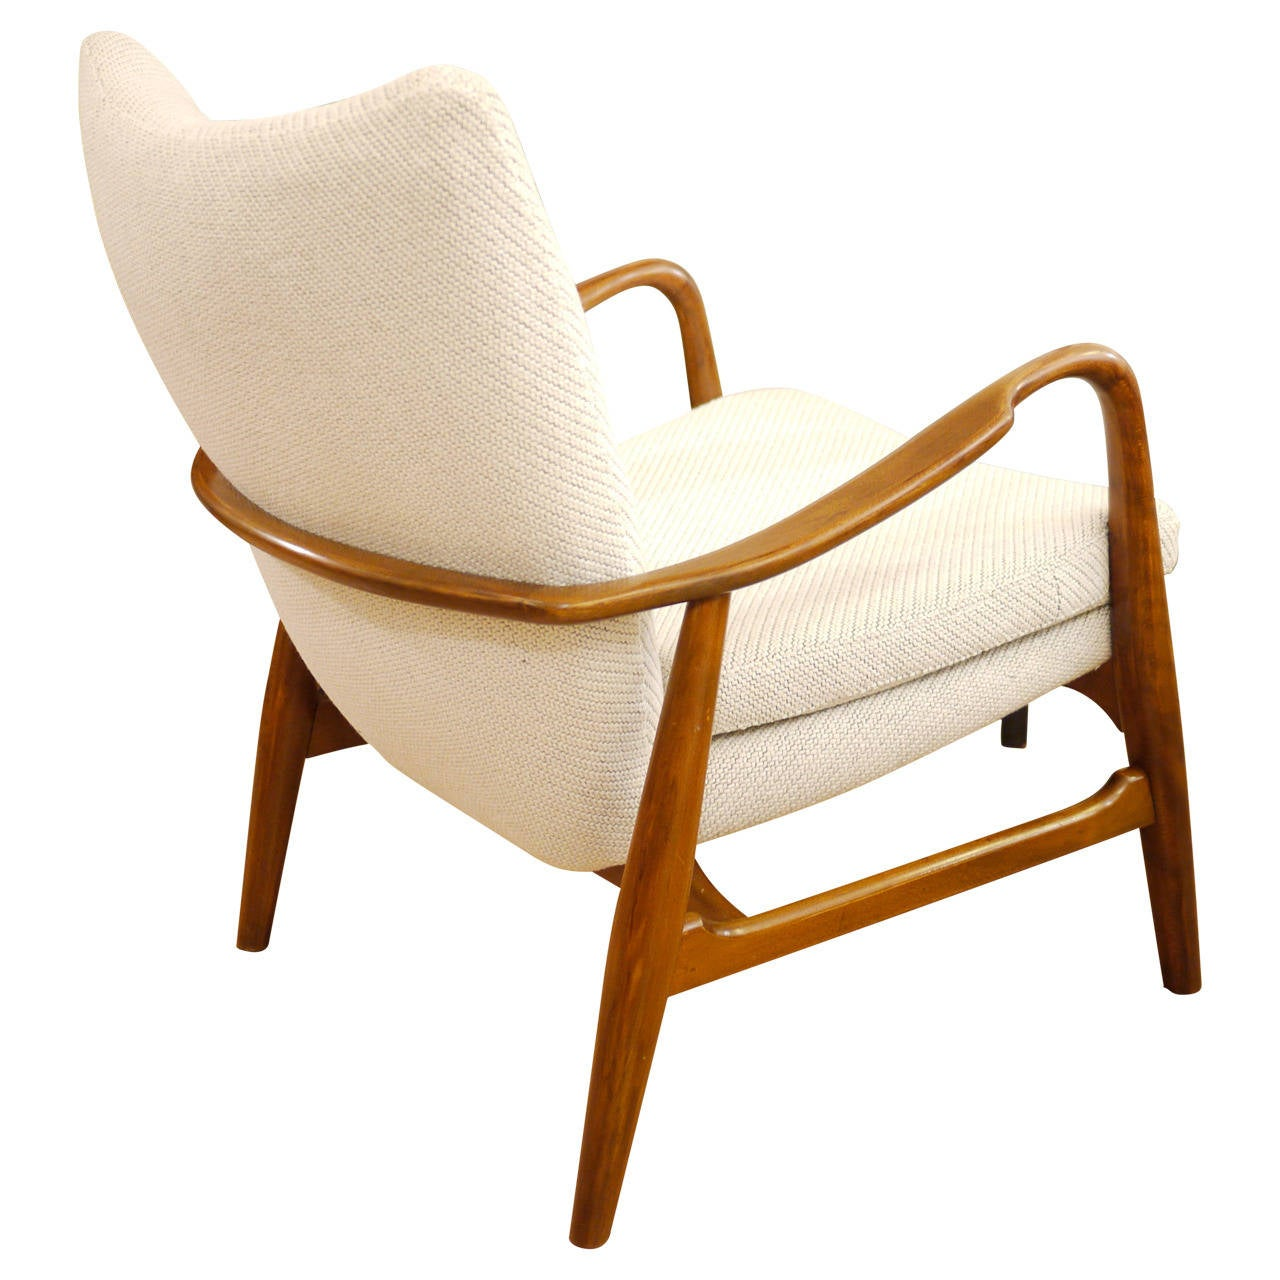 D754 06a: Schubel And Madse Chair At 1stdibs